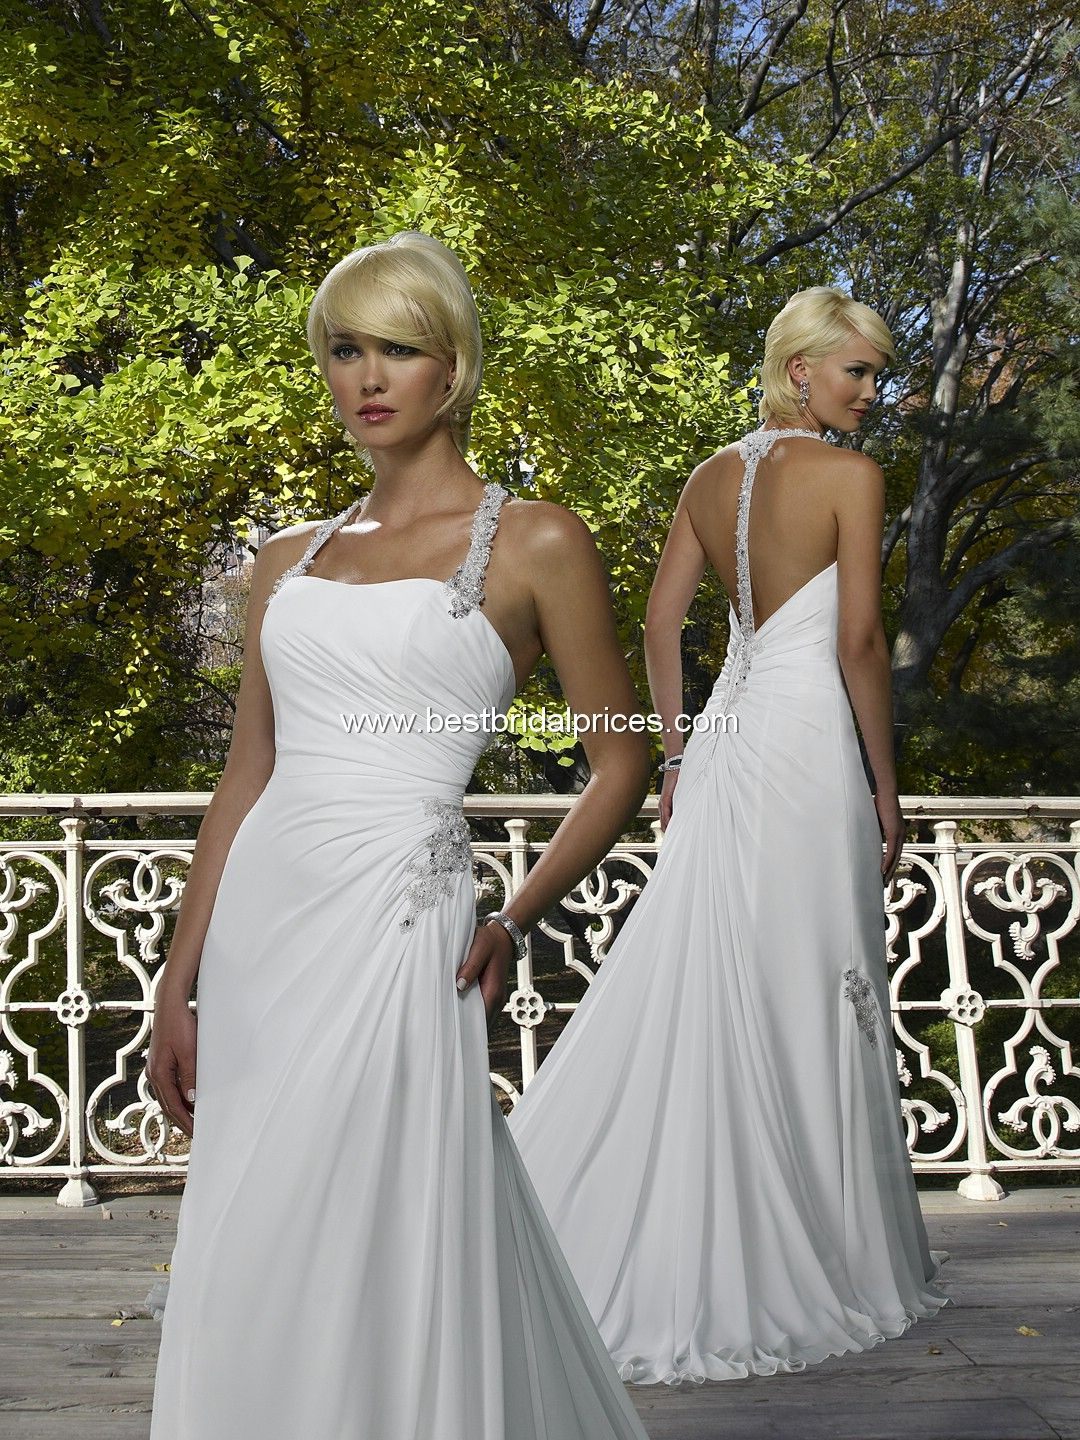 Fantasy by forever yours wedding dresses style 410224 dresses fantasy by forever yours wedding dresses style 410224 ombrellifo Image collections